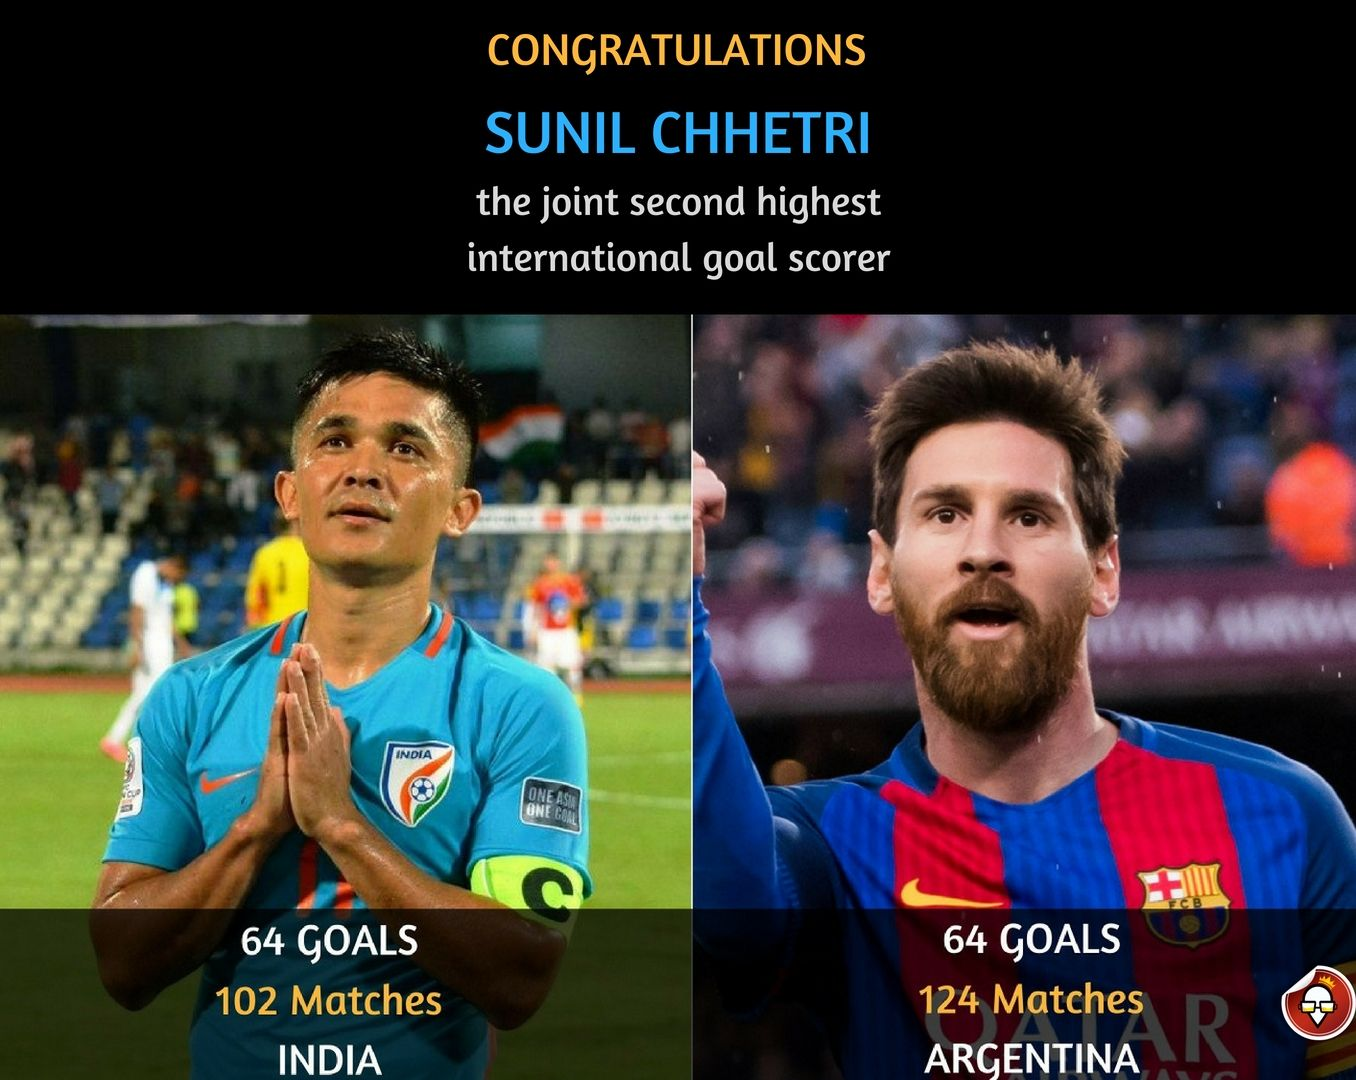 Sunil Chhetri proved that #football is not only about #Messi